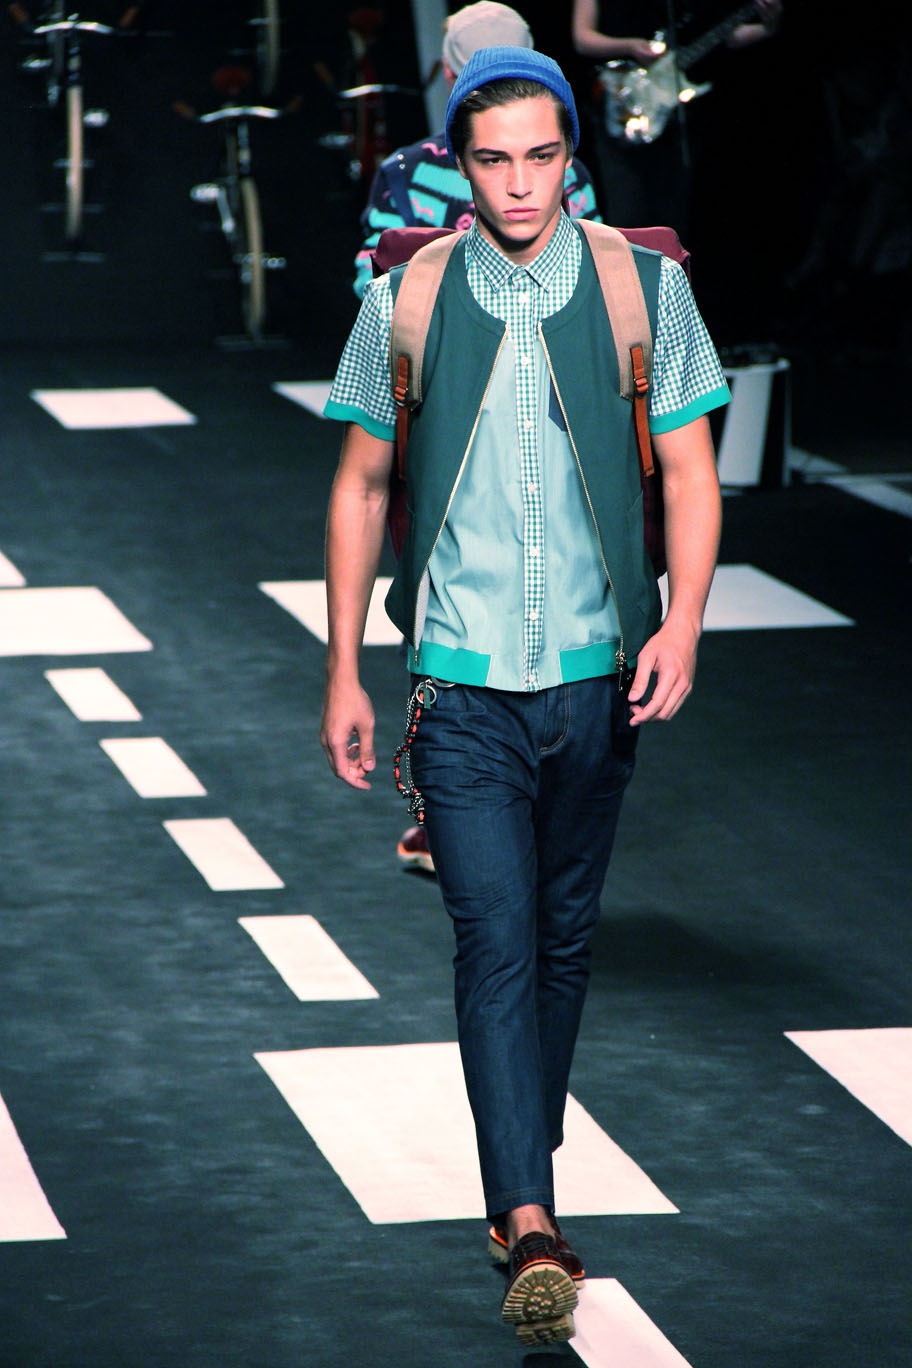 frankie-morello-spring-summer-2012-men-collection-milano-fashion-week-2012-frankie-morello-fashion-show-catwalk